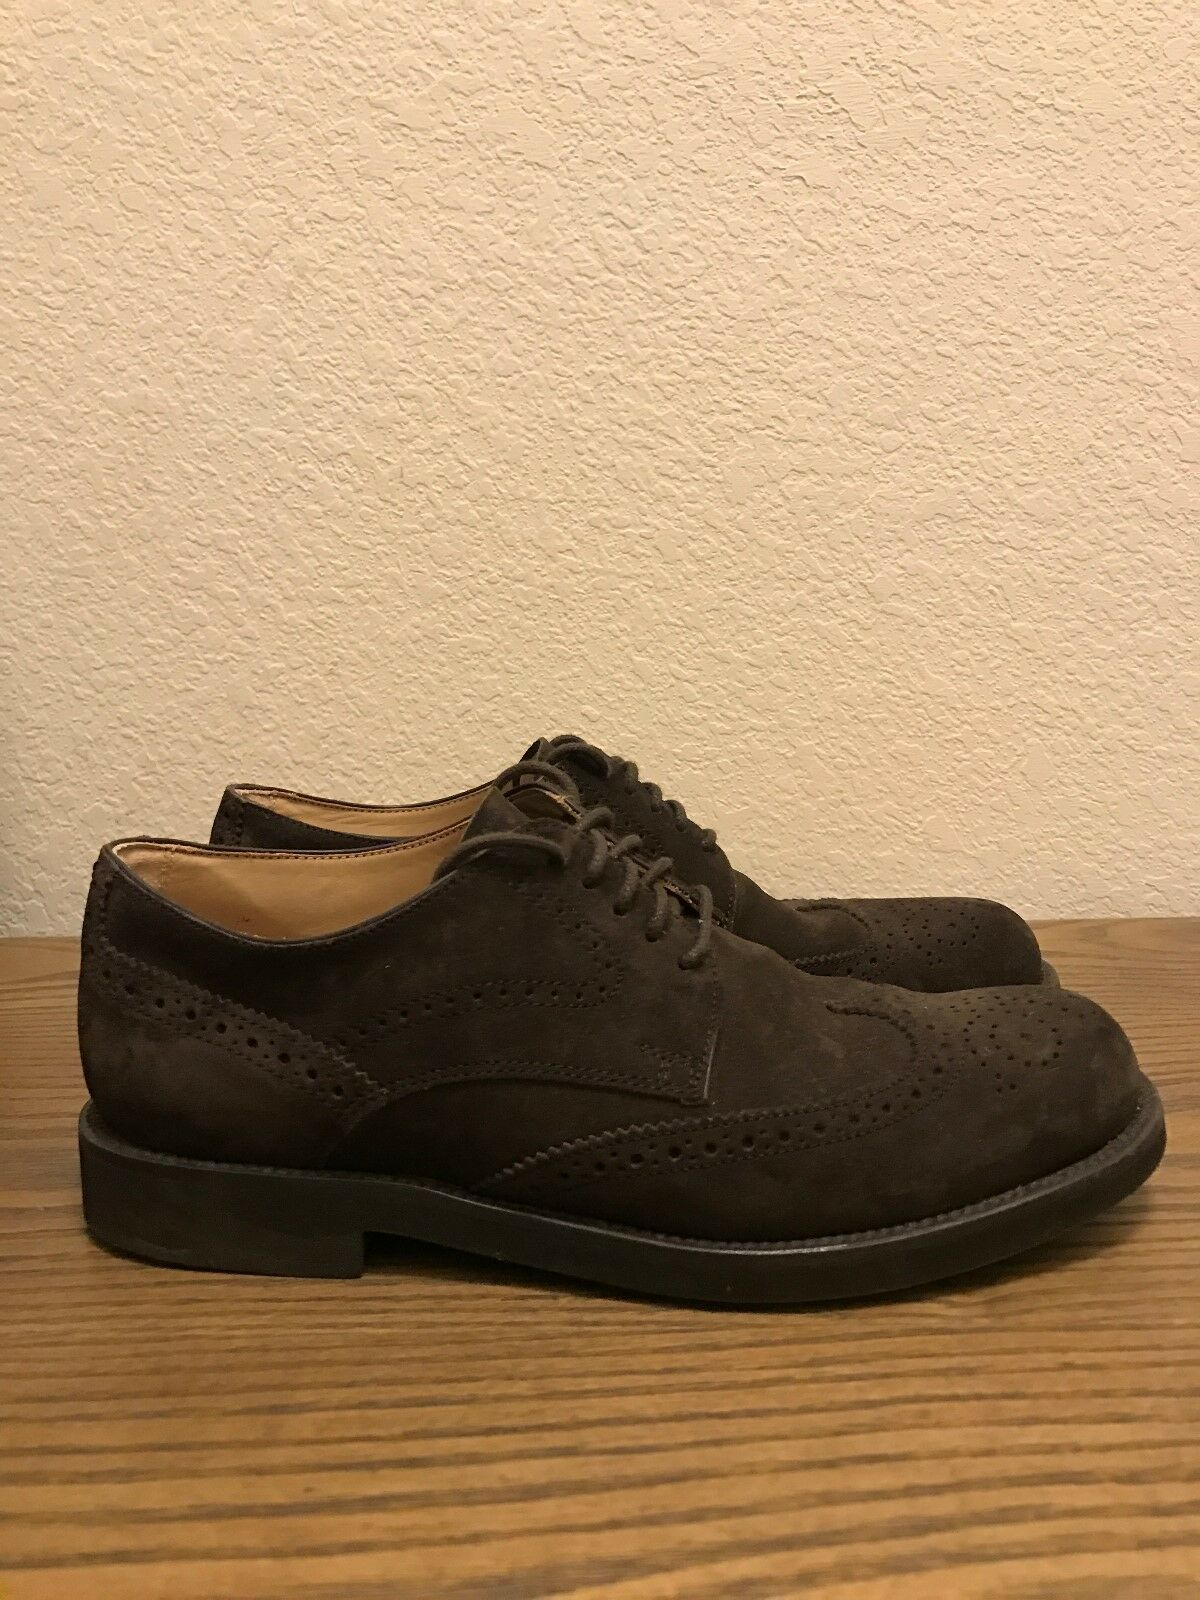 Uomo's Tods SHOES LACE-UP SHOES Tods IN SUEDE size 5.5 4007f5